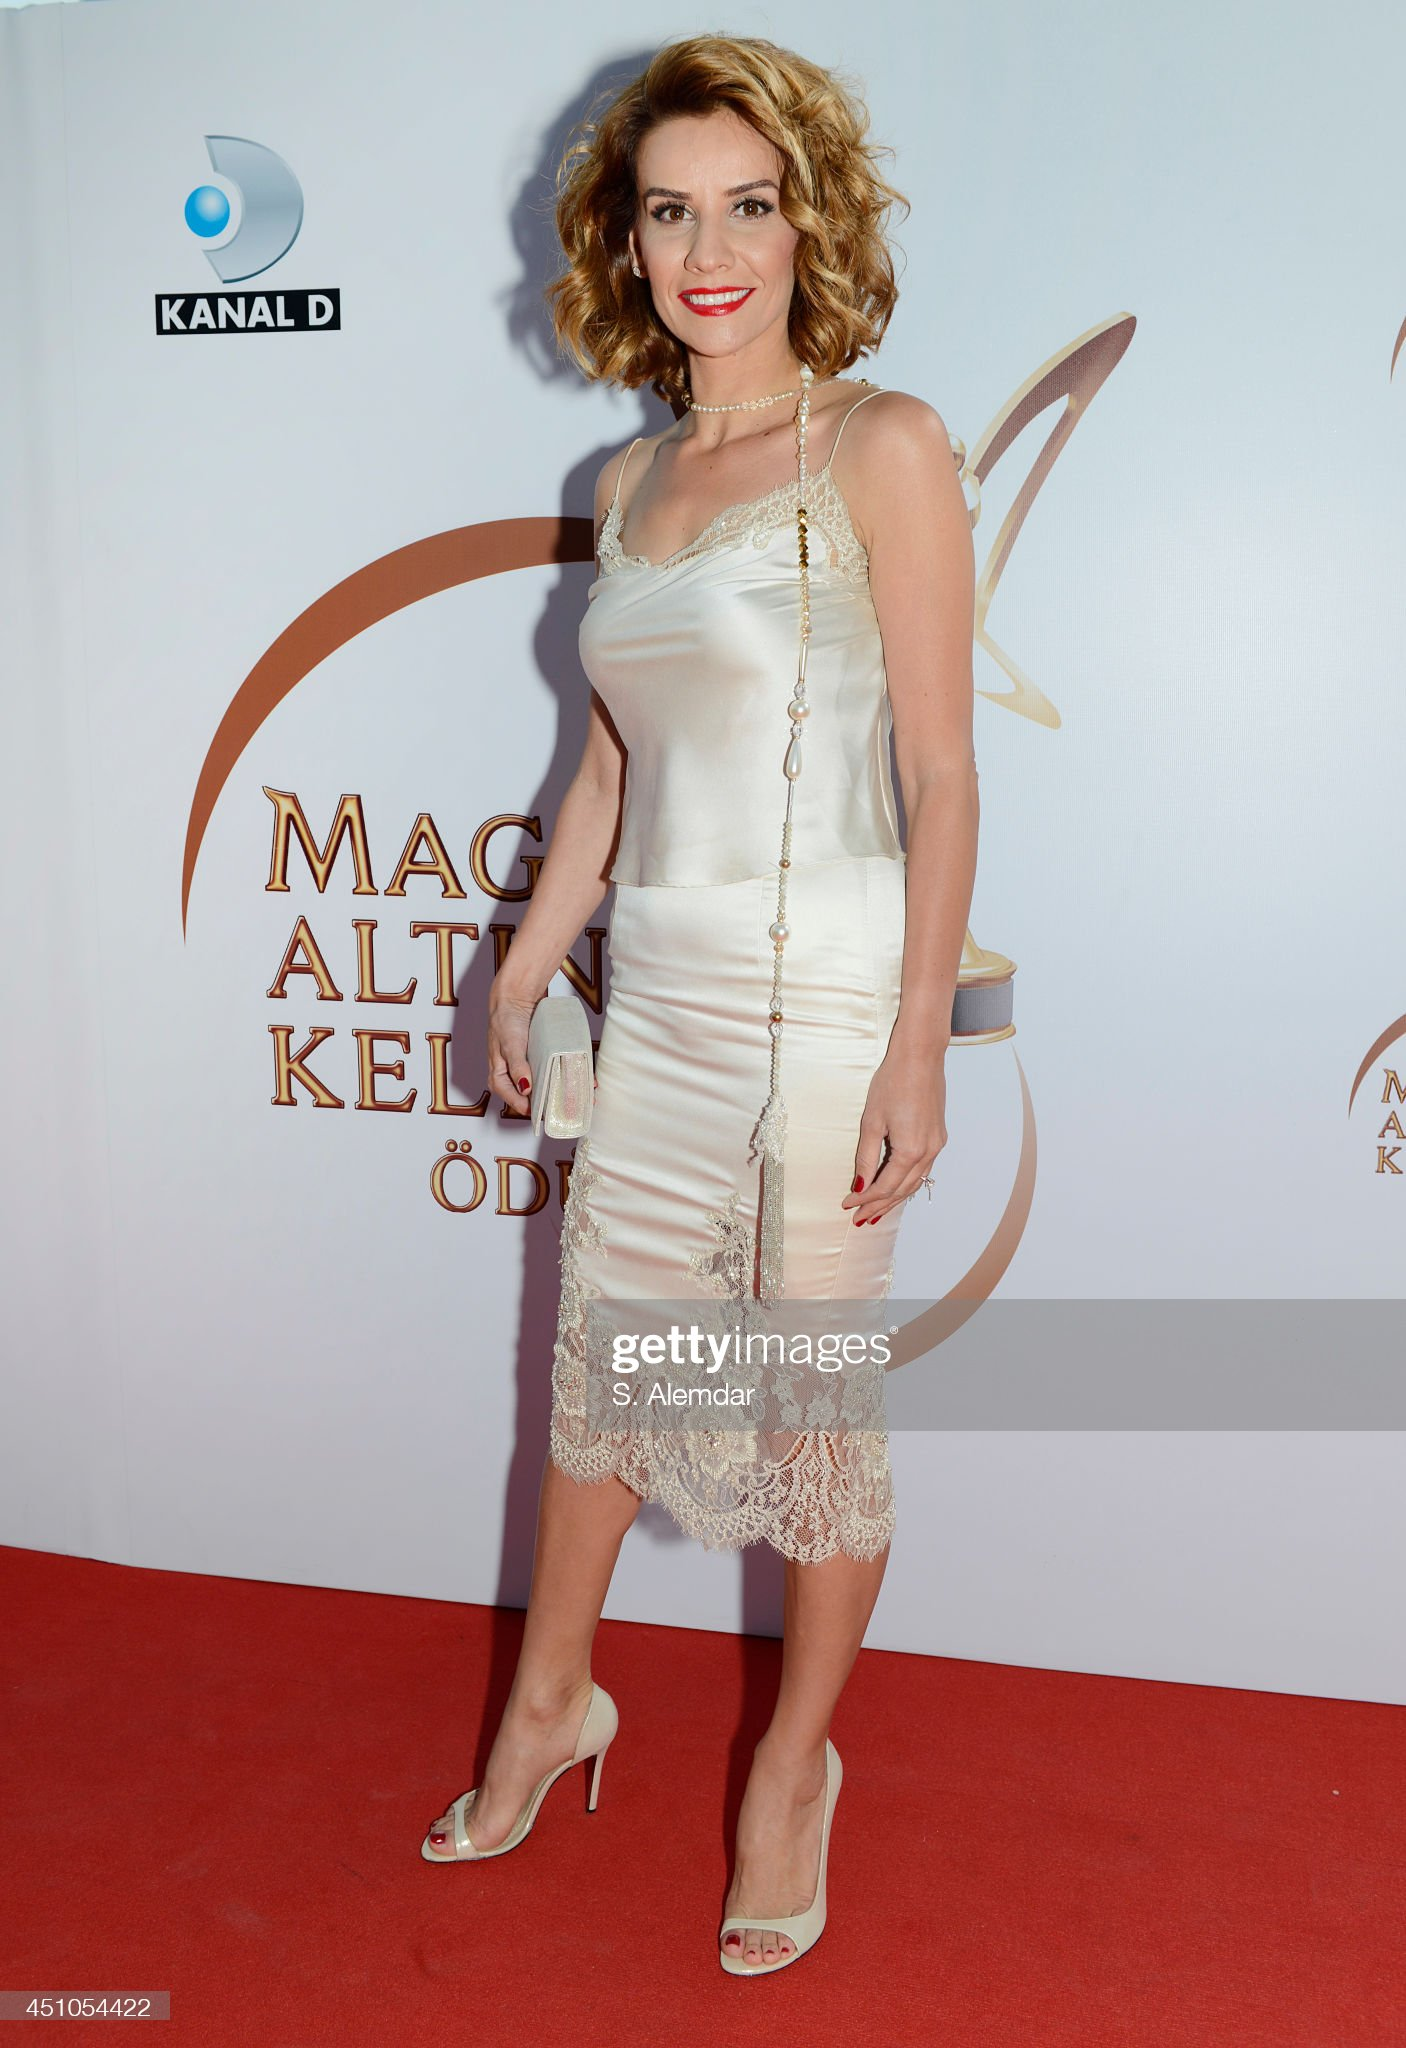 Turcos      - Página 2 Esra-erol-attends-the-magnum-golden-butterfly-awards-at-zorlu-center-picture-id451054422?s=2048x2048